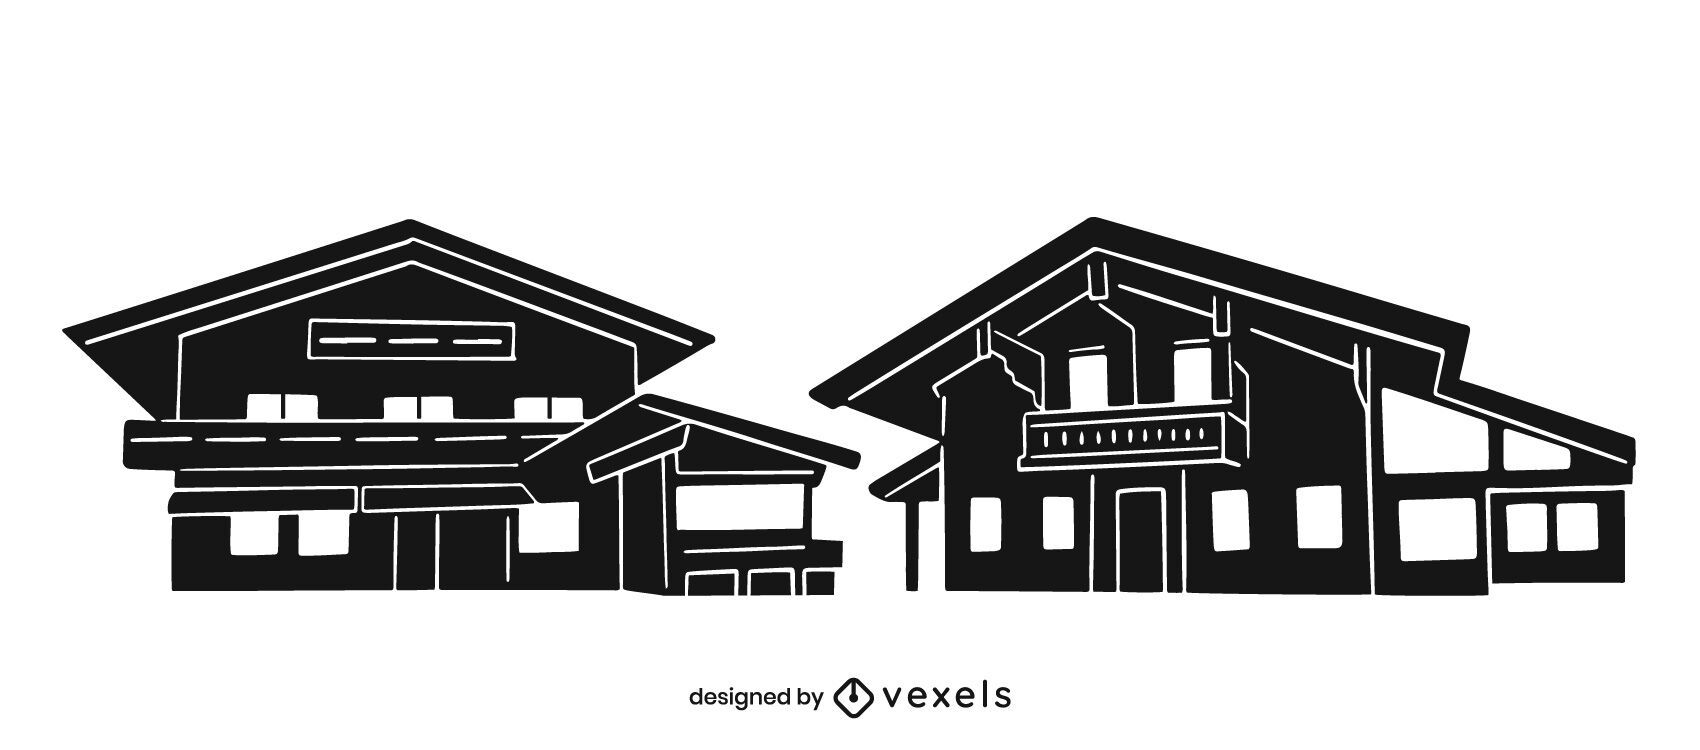 House huts cut-out silhouette set